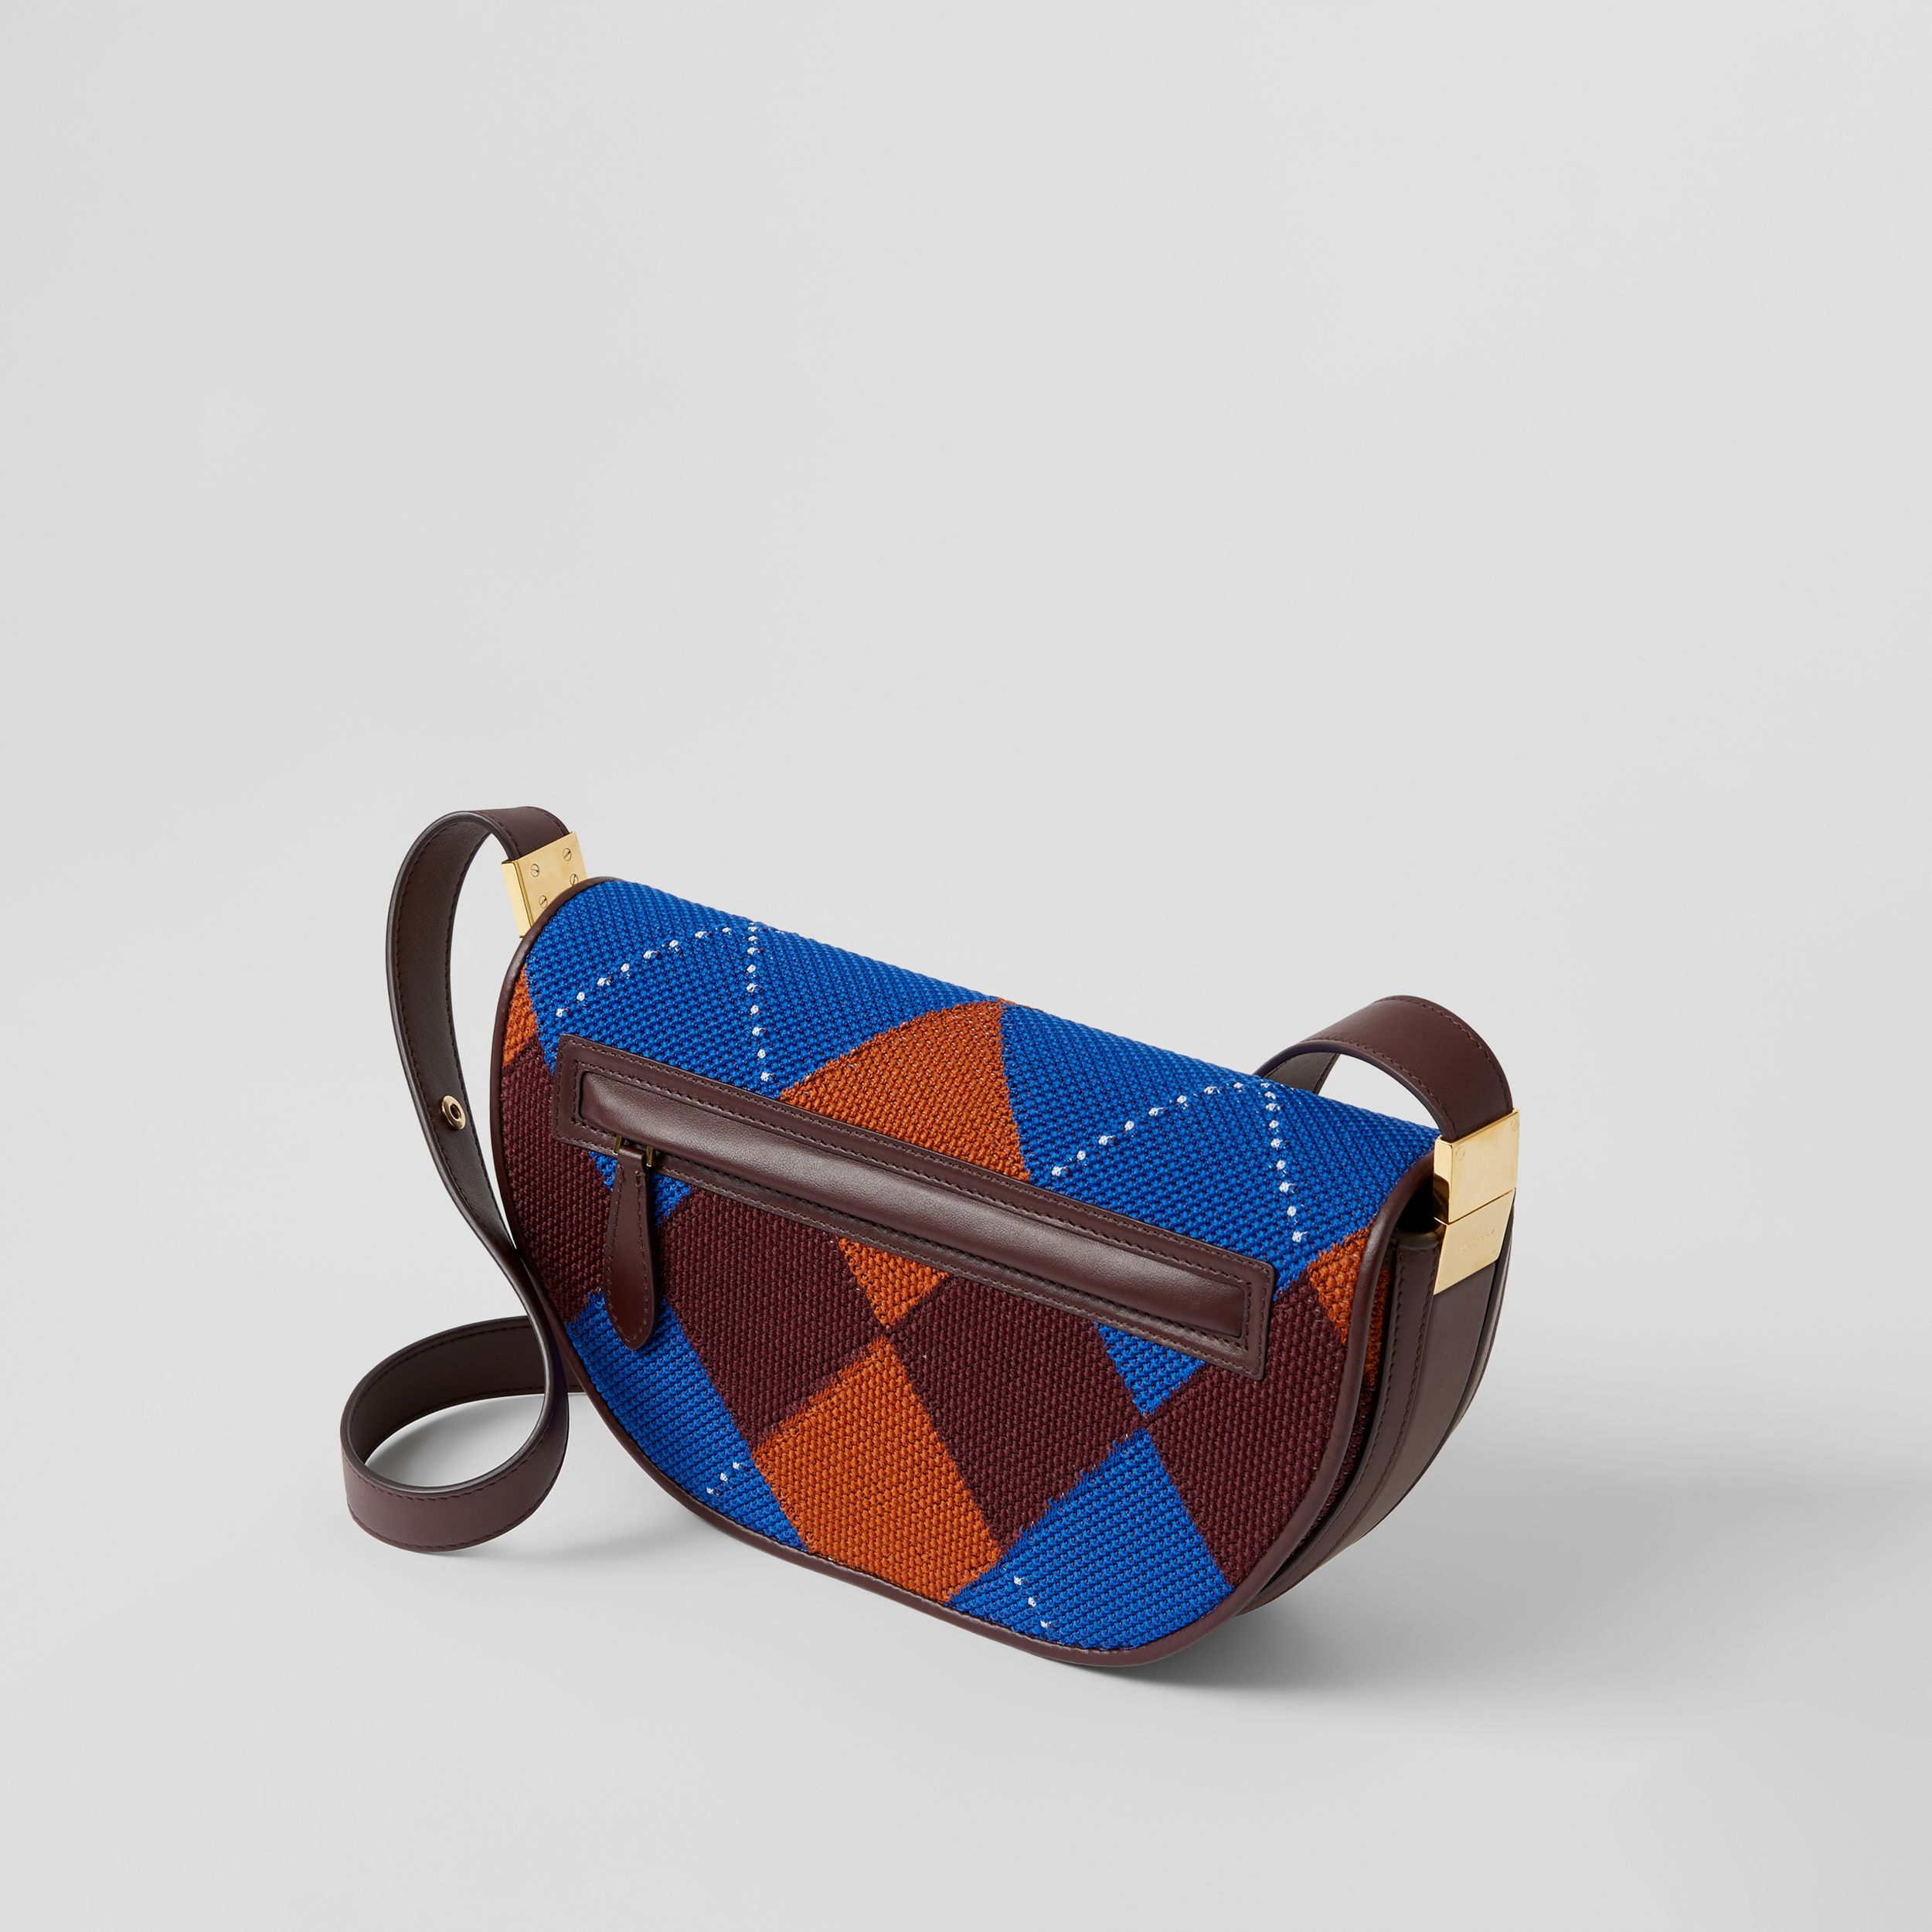 Small Argyle Knit and Leather Olympia Bag in Bright Blue - Women | Burberry - 4